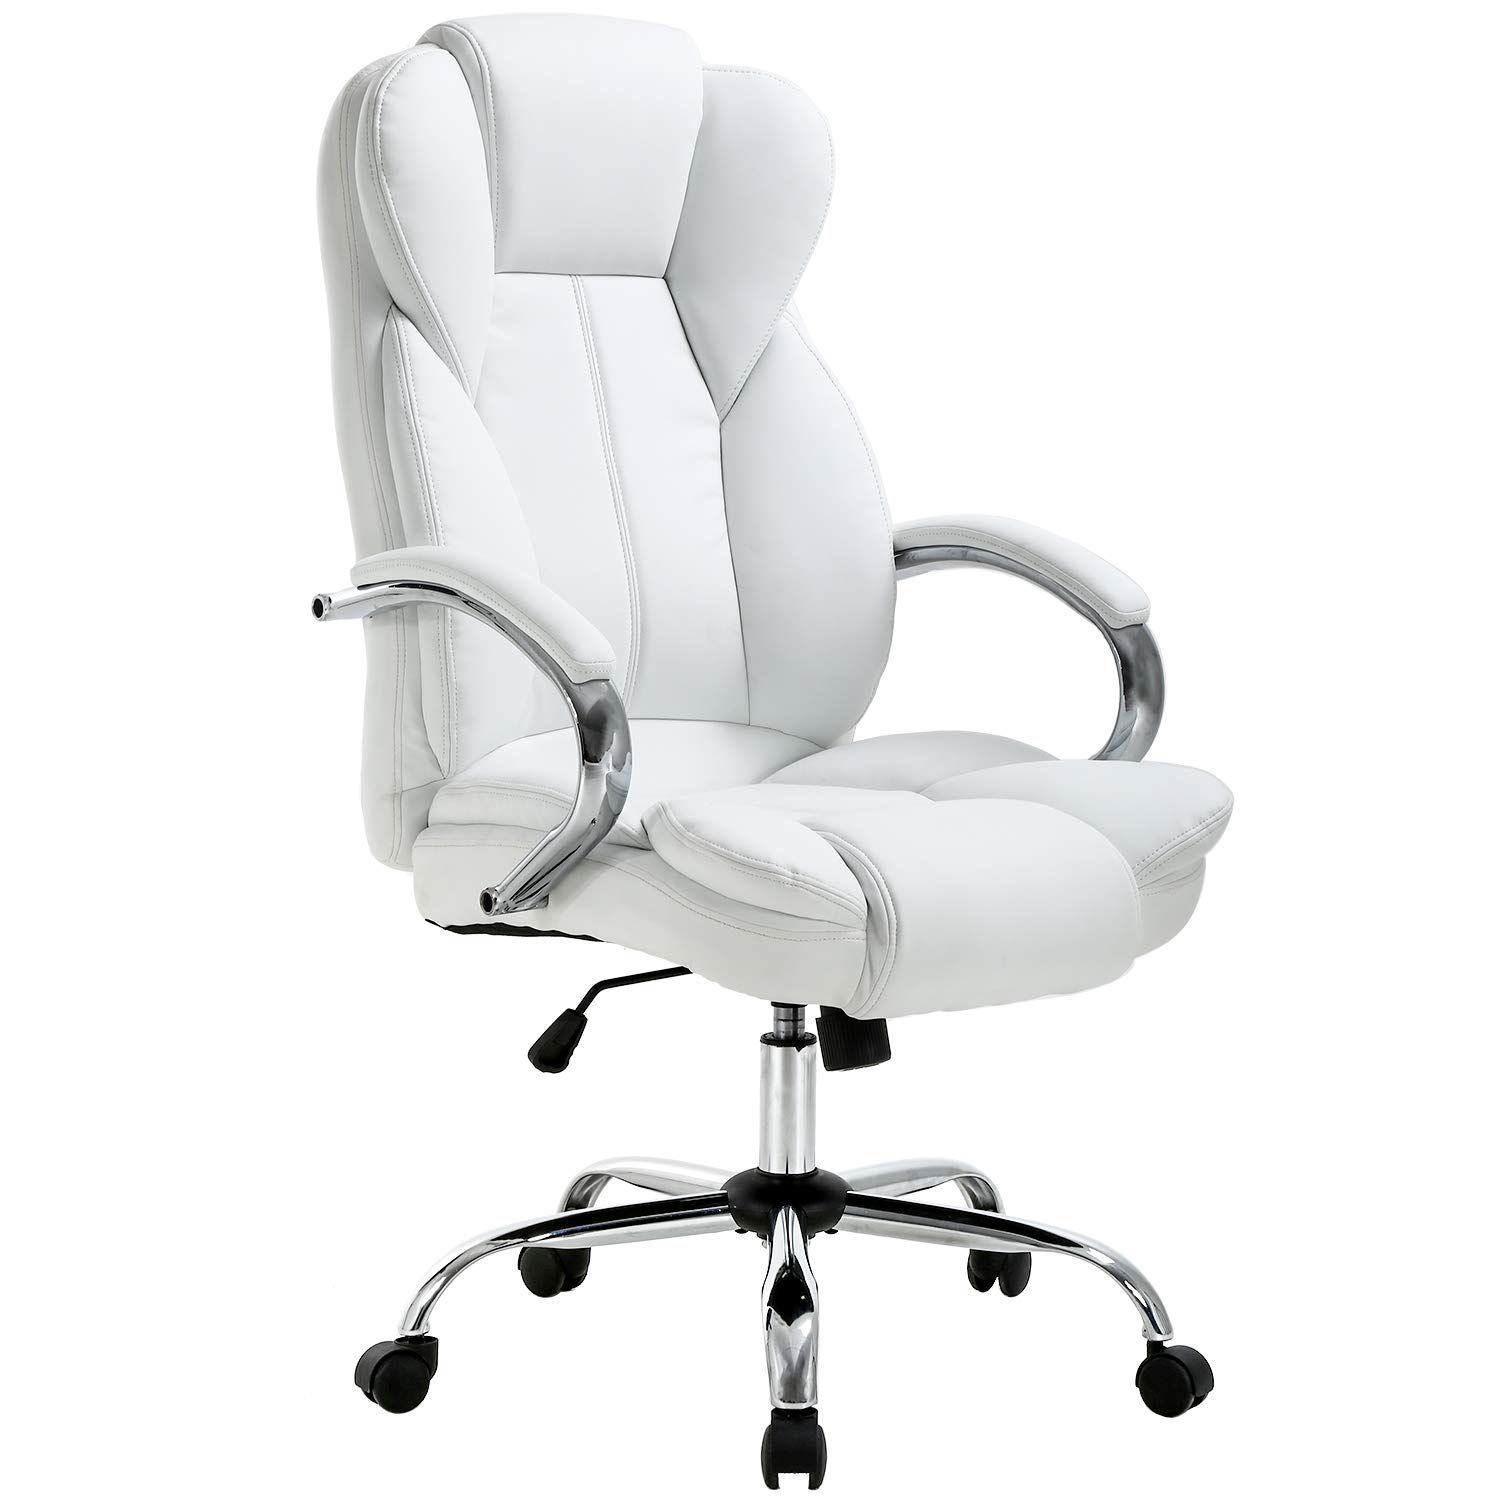 Ergonomic Office Chair Desk Chair Pu Leather Computer Chair